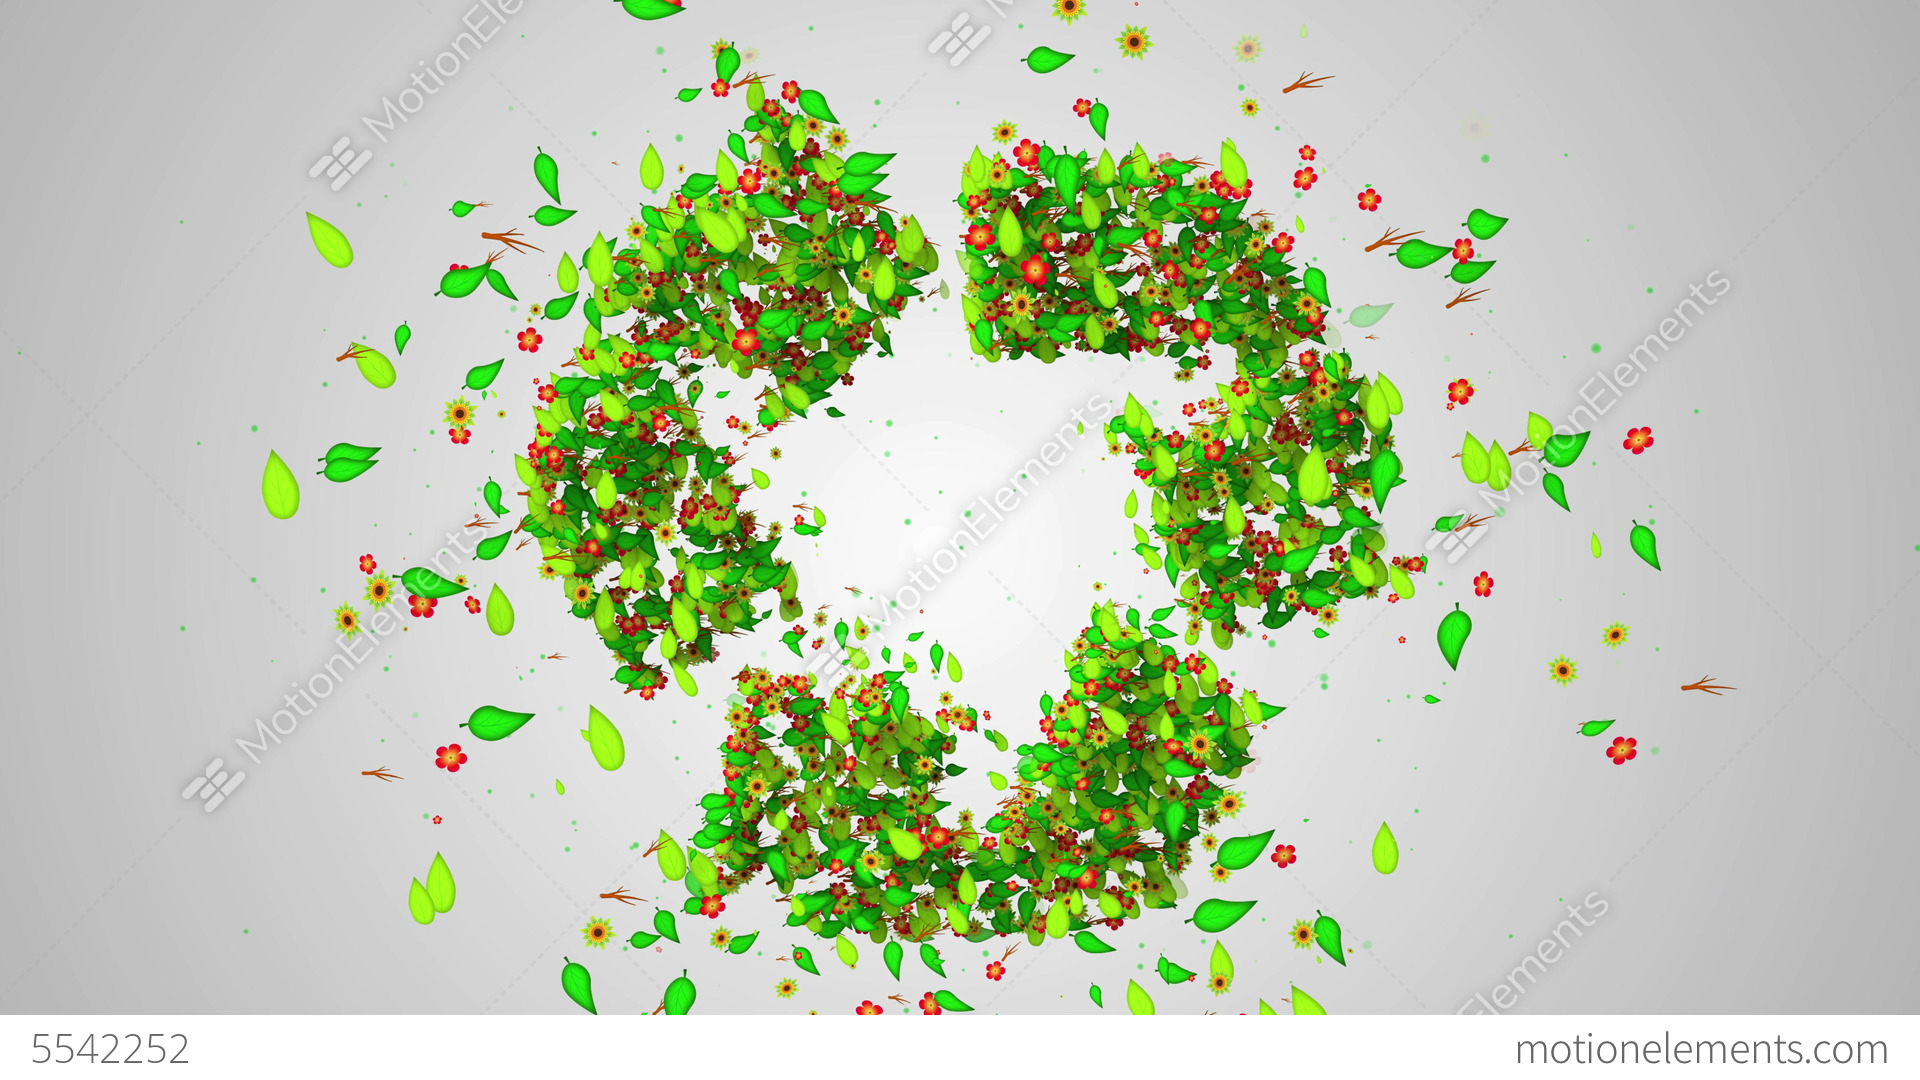 Recycle symbol green leaves particles butterfly stock animation recycle symbol green leaves particles butterfly stock video footage biocorpaavc Images